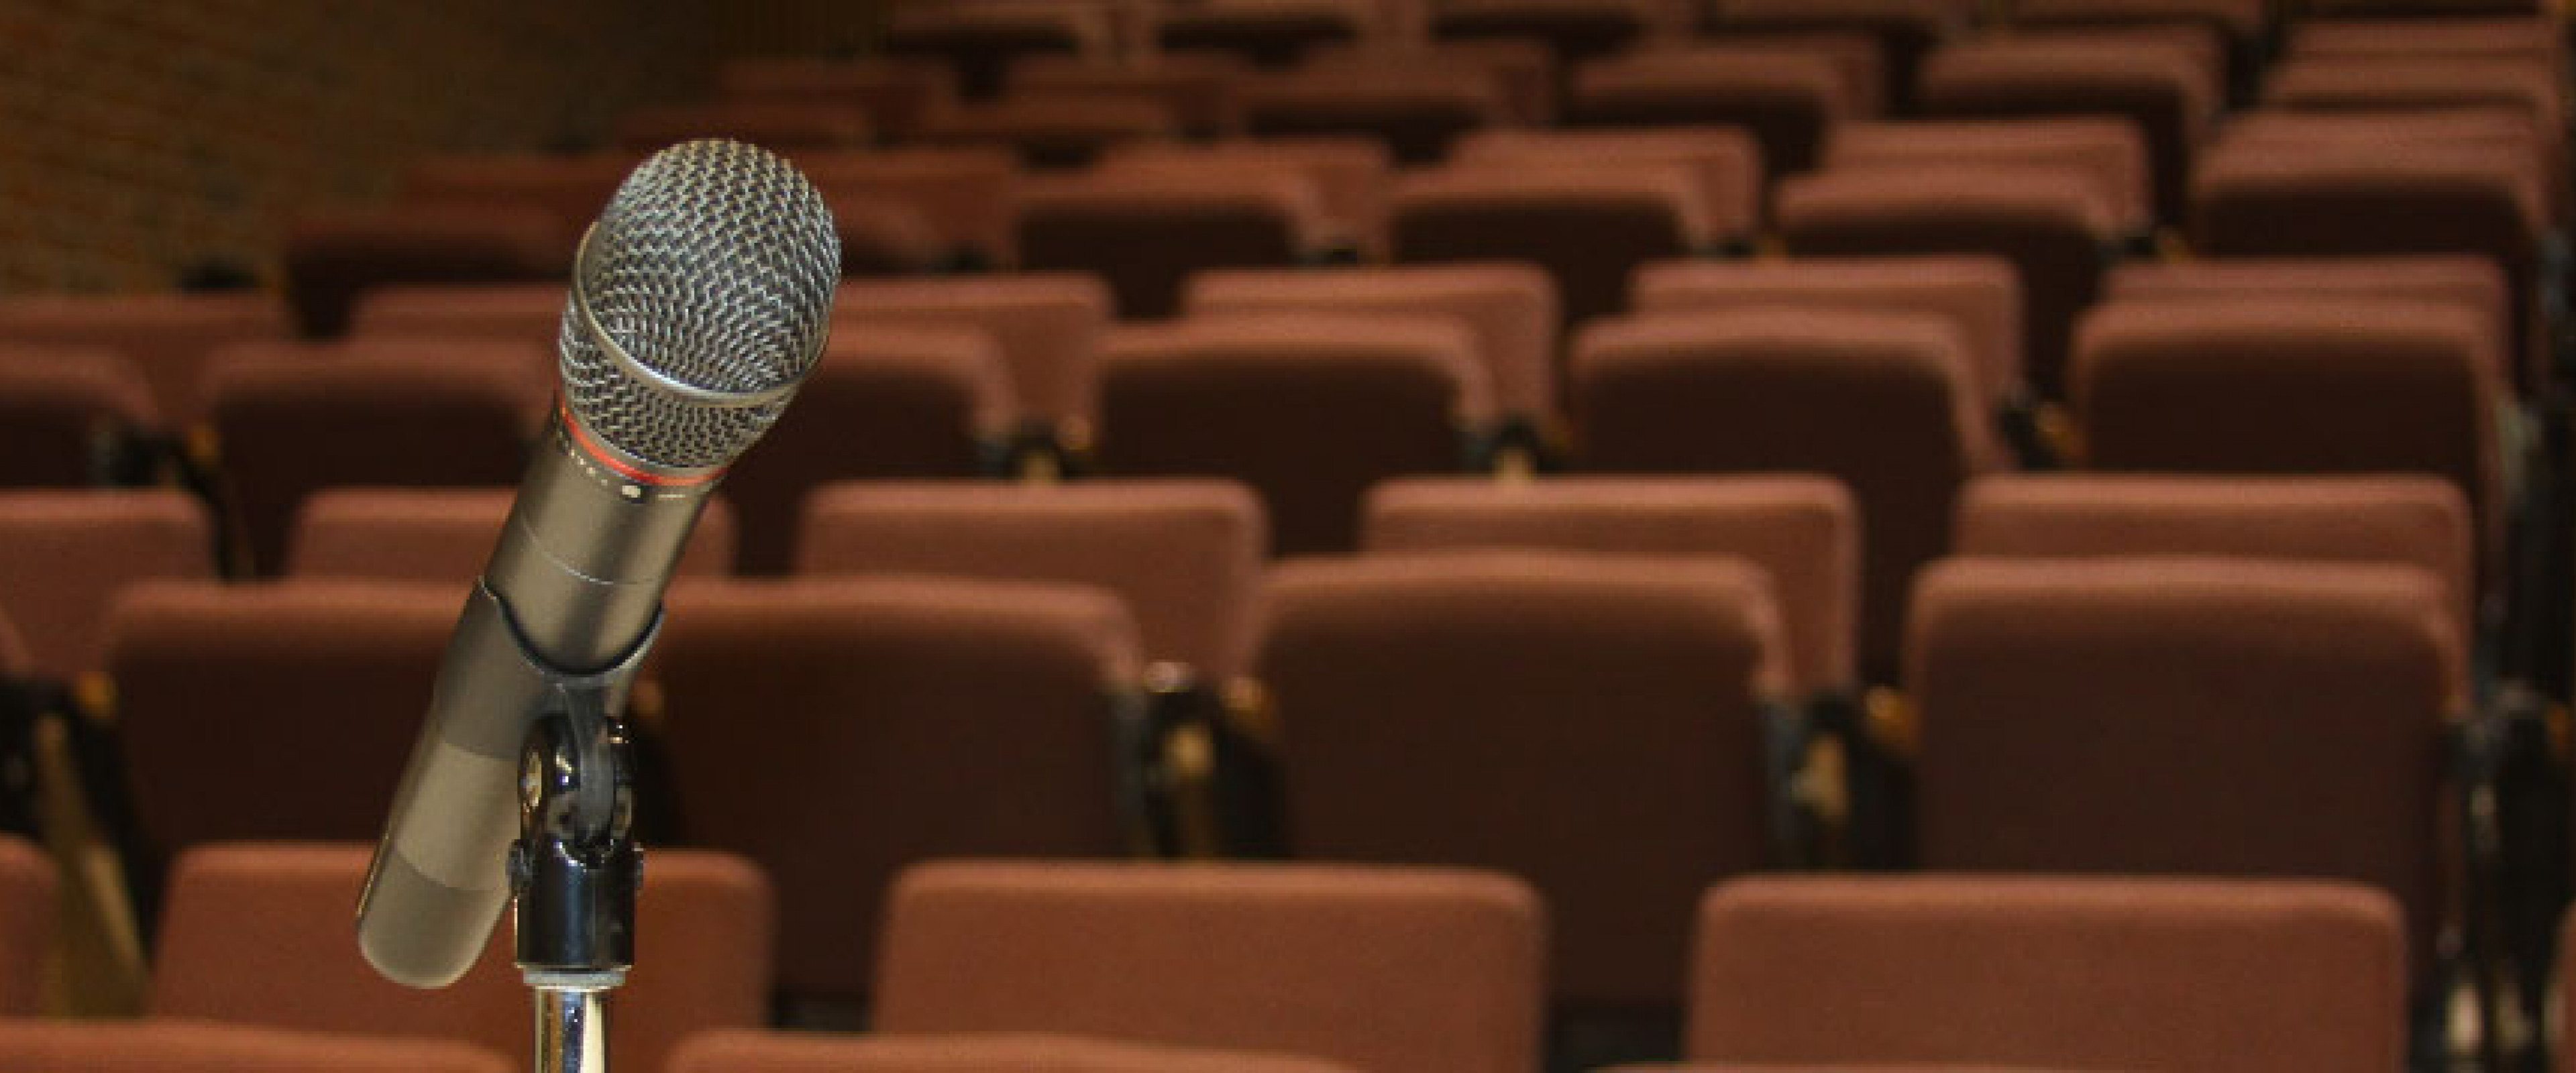 Microphone closeup with auditorium seating in the back